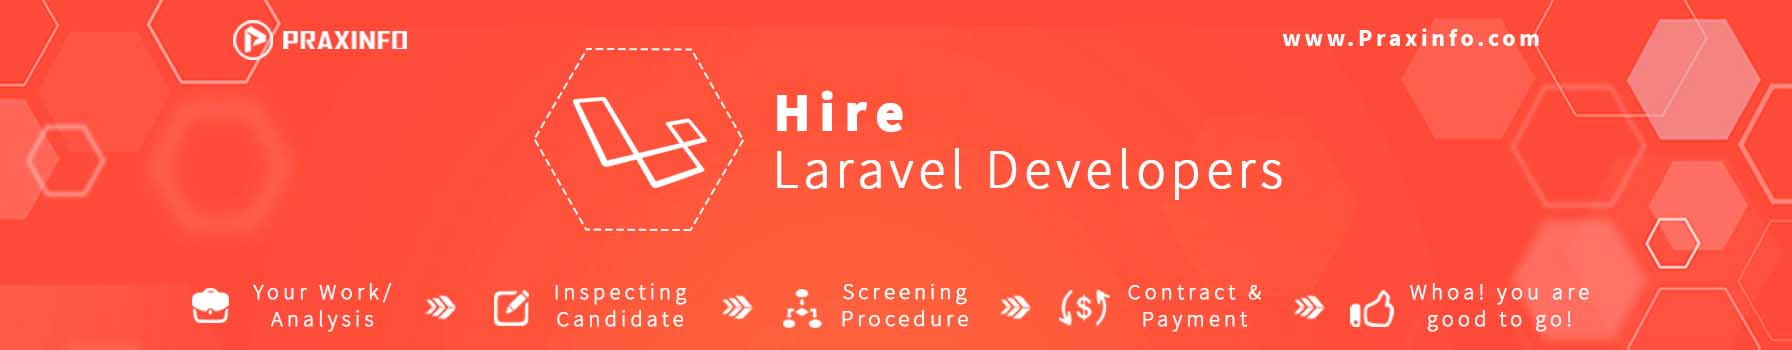 hire-Laravel-developer-banner.jpg